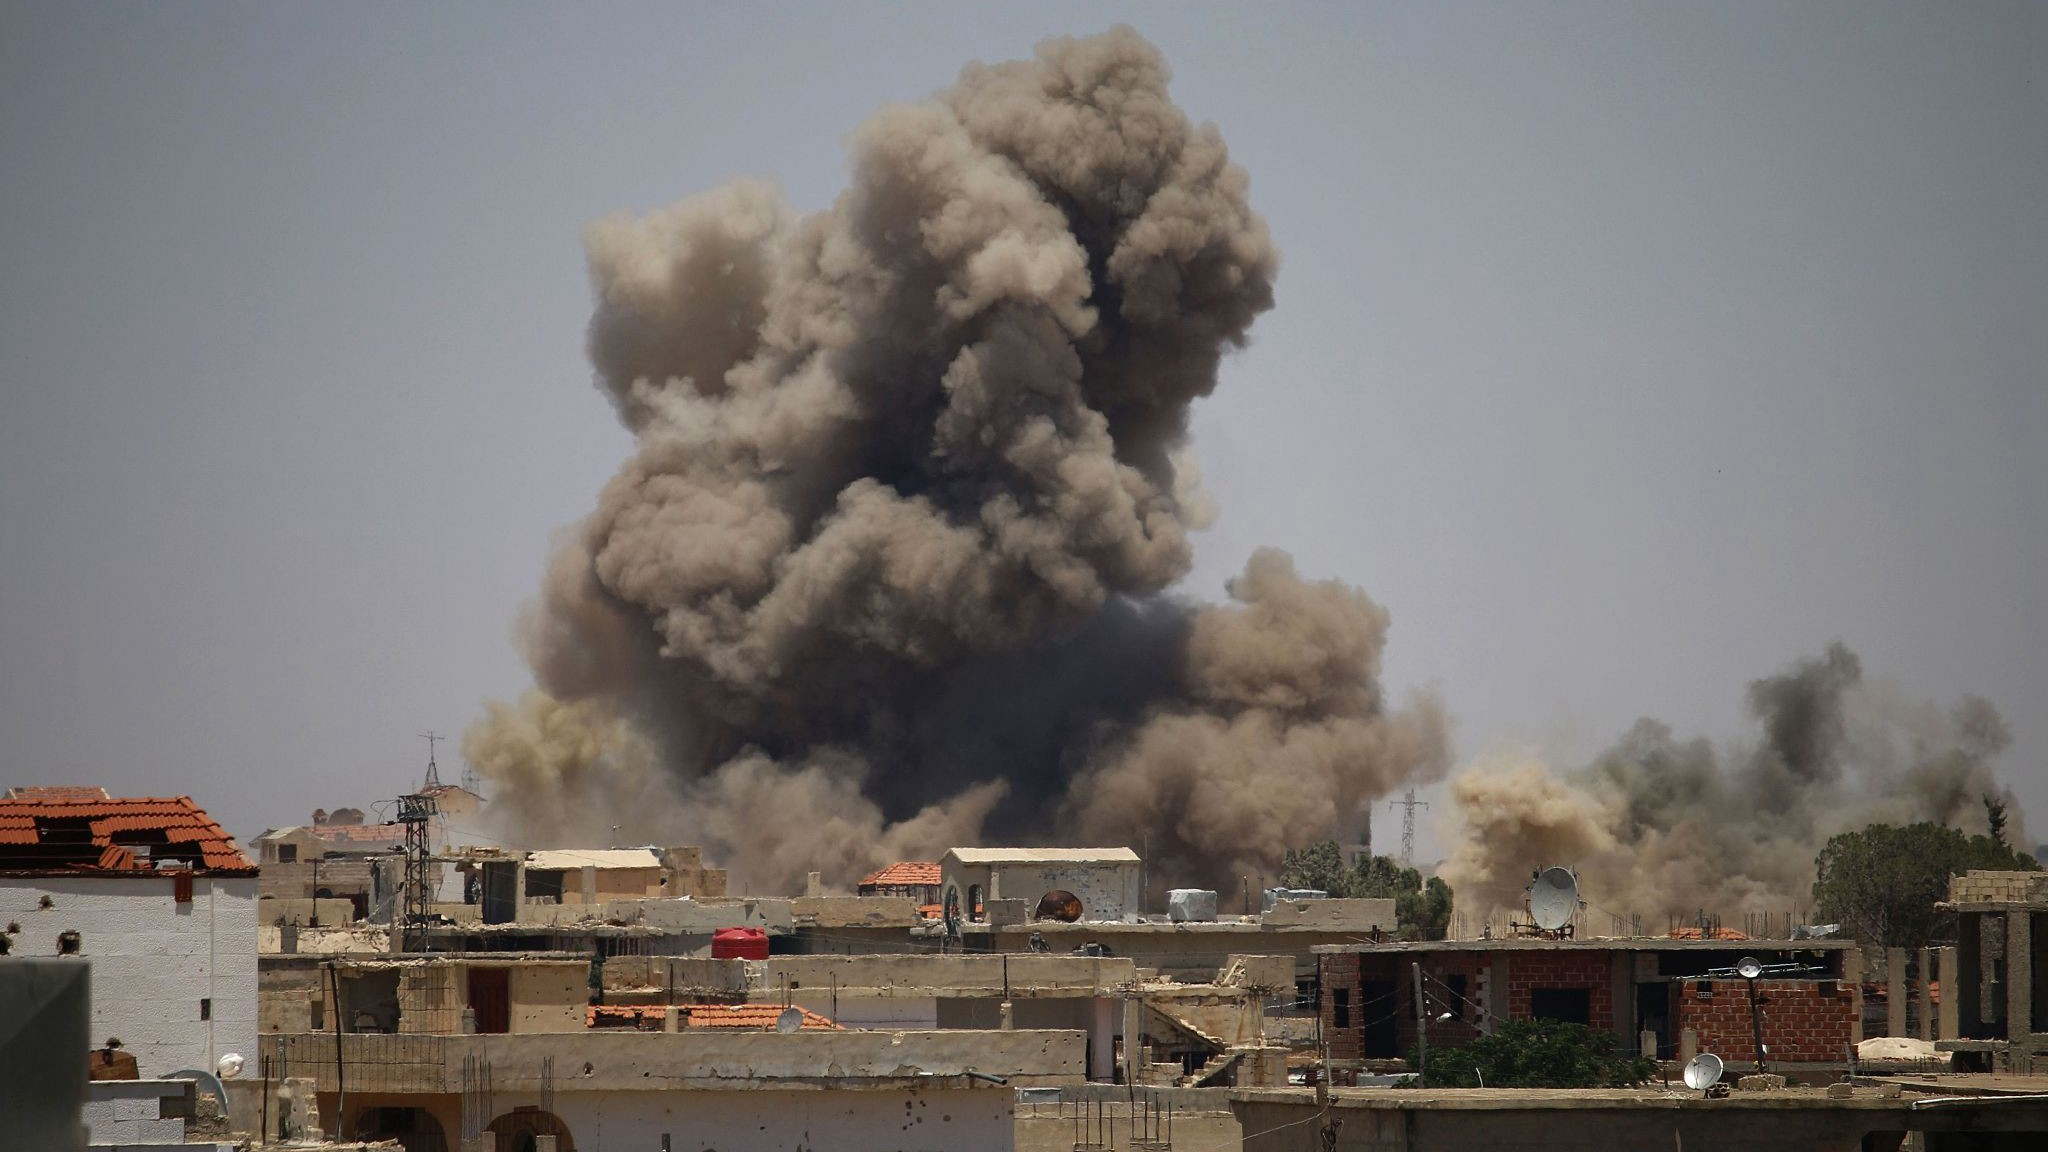 A new war may be brewing in southern Syria